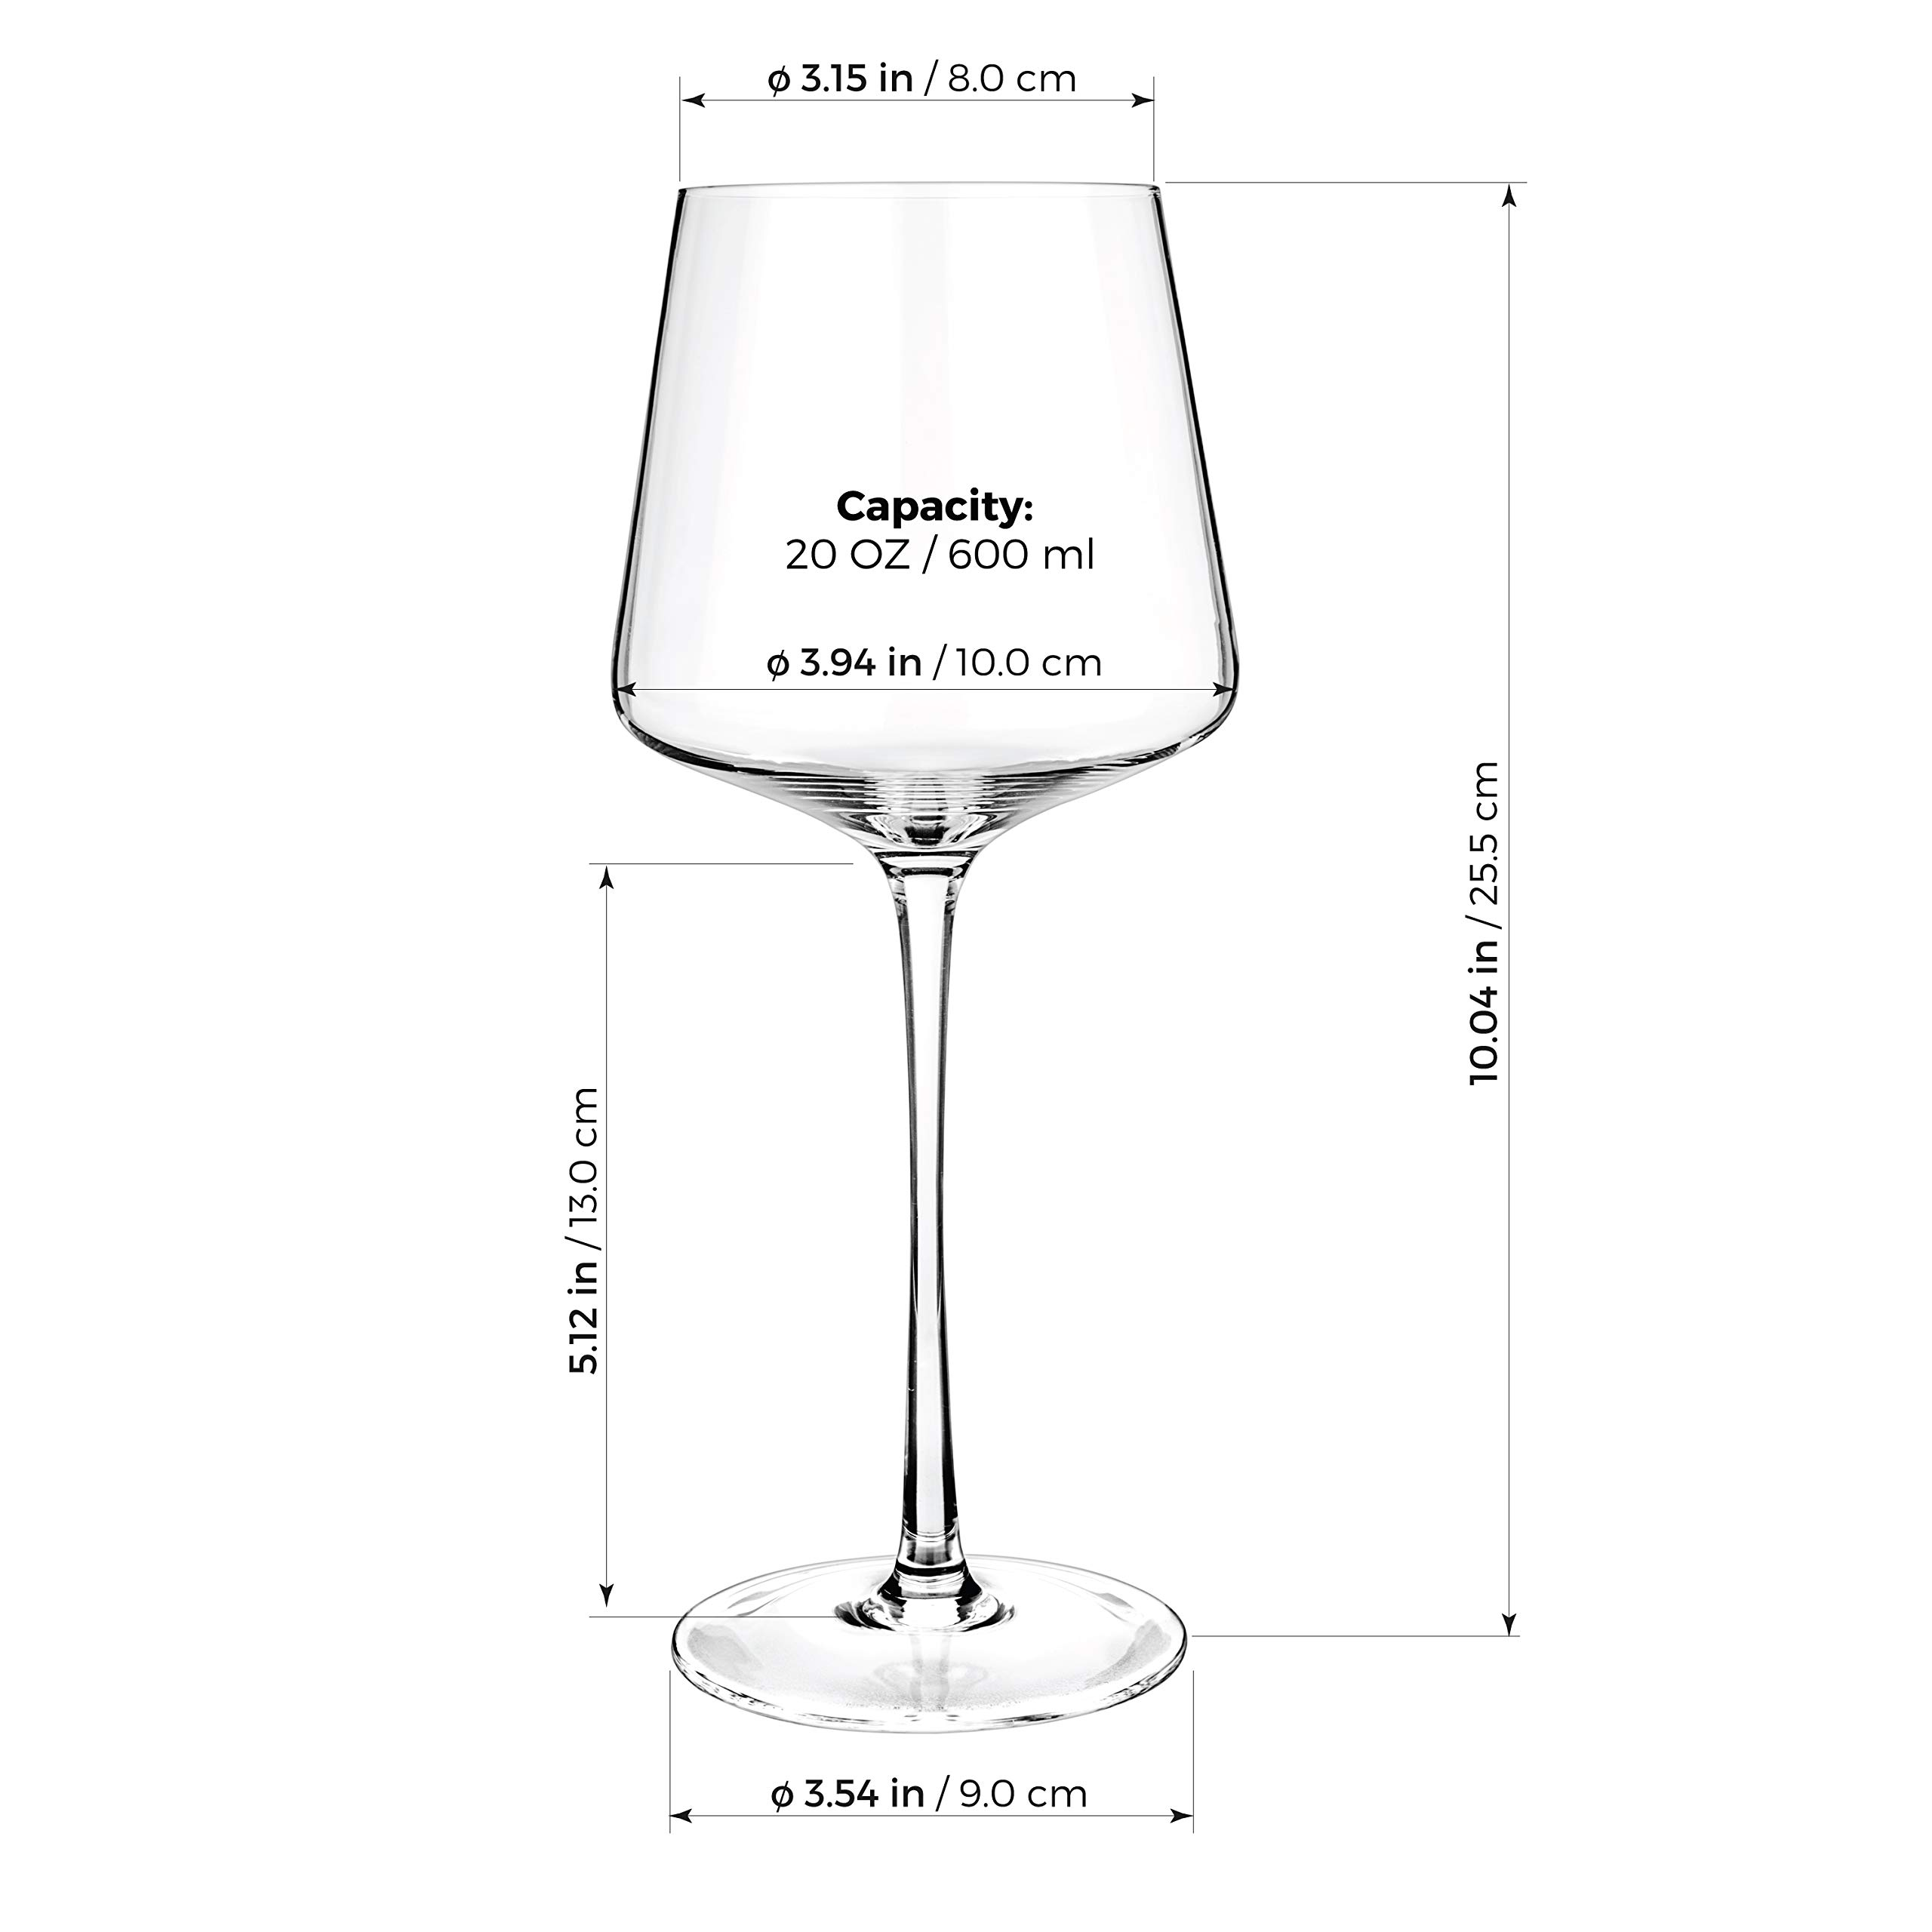 Luxbe - Crystal Wine Glasses 20.5-ounce, Set of 4 - Red or White Wine Large Glasses - 100% Lead Free Glass - Pinot Noir - Burgundy - Bordeaux - 600ml by Luxbe (Image #5)